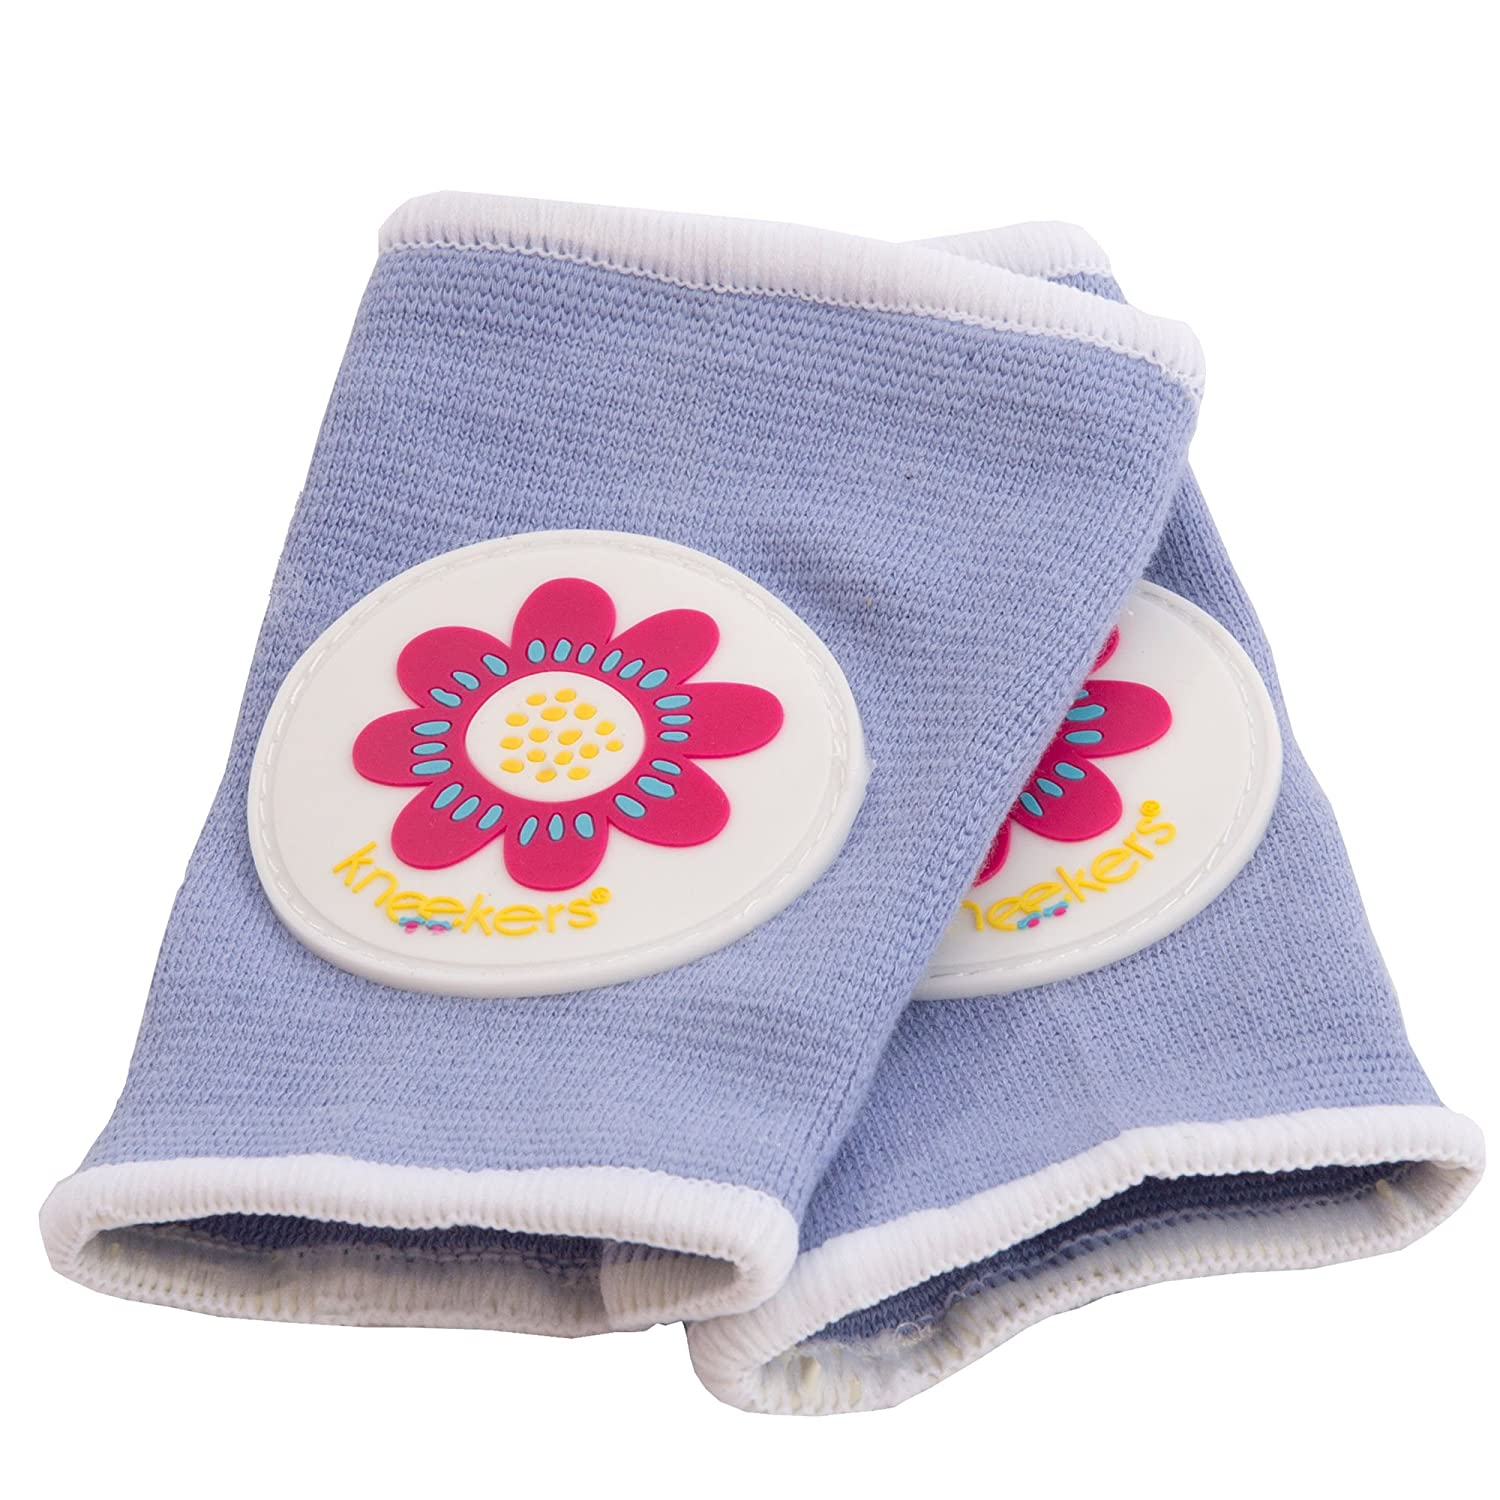 Top 9 Best Baby Knee Pads for Crawling Reviews in 2020 3